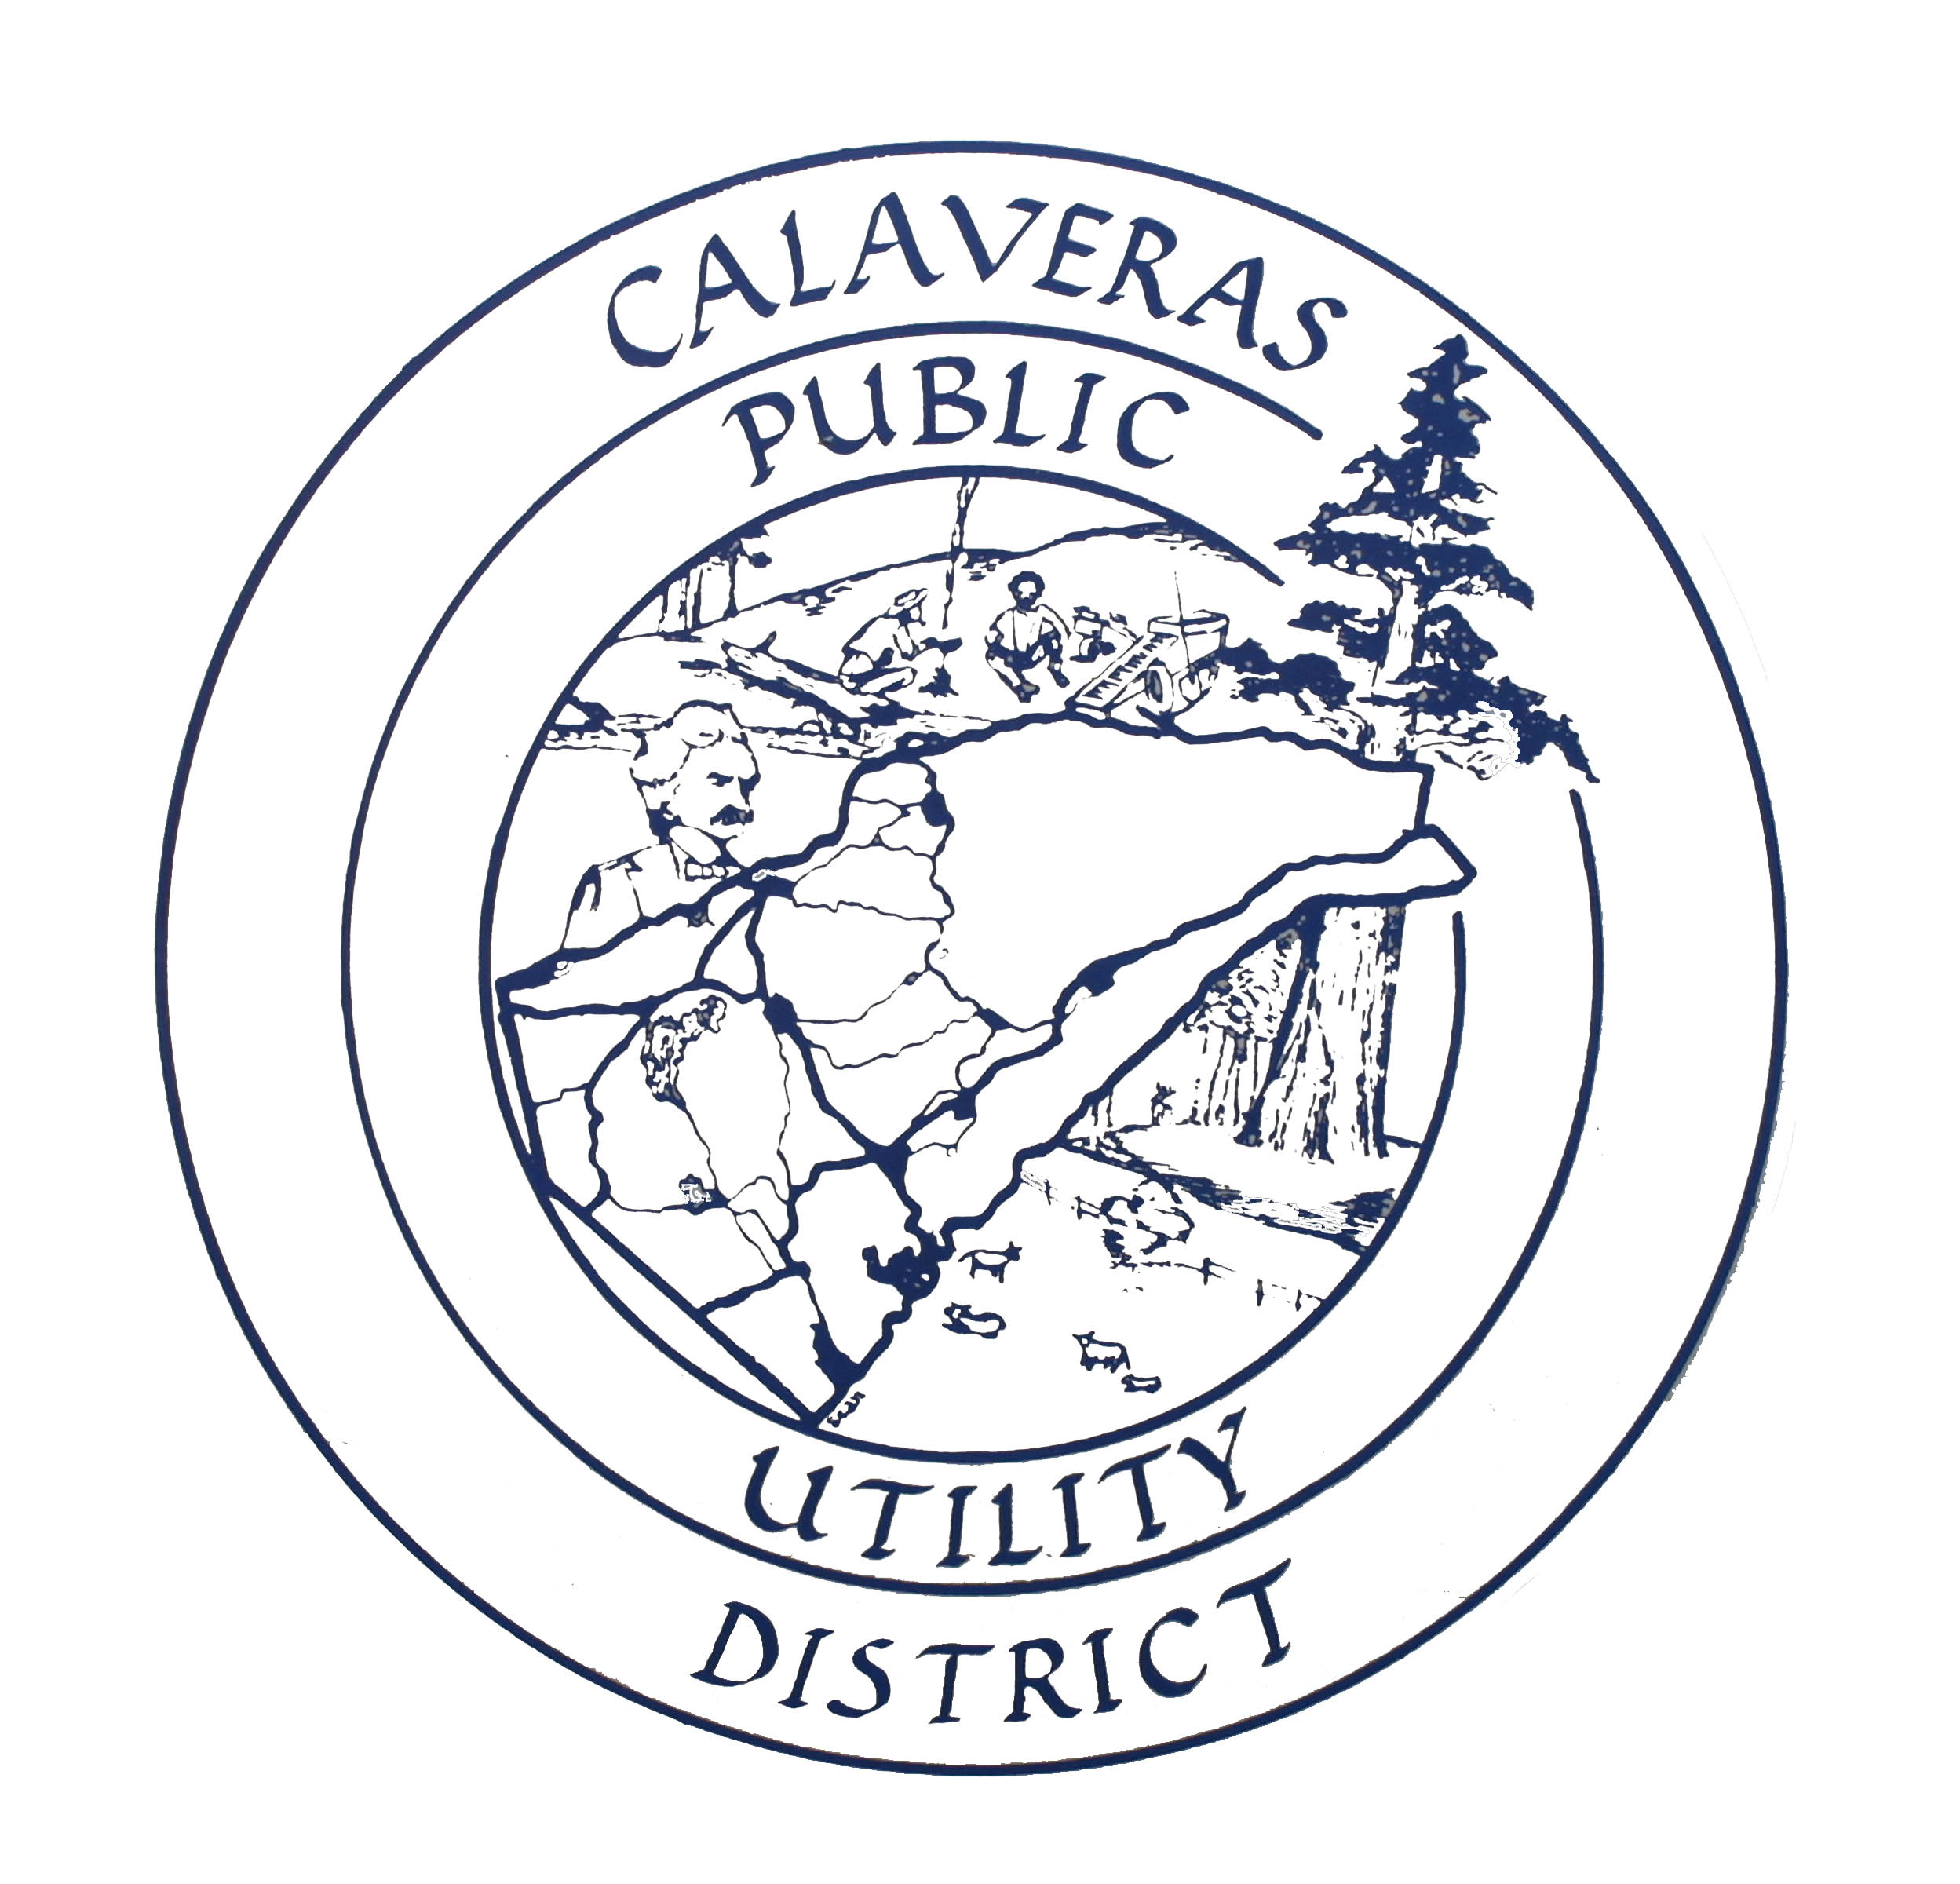 Calaveras Public Utility District